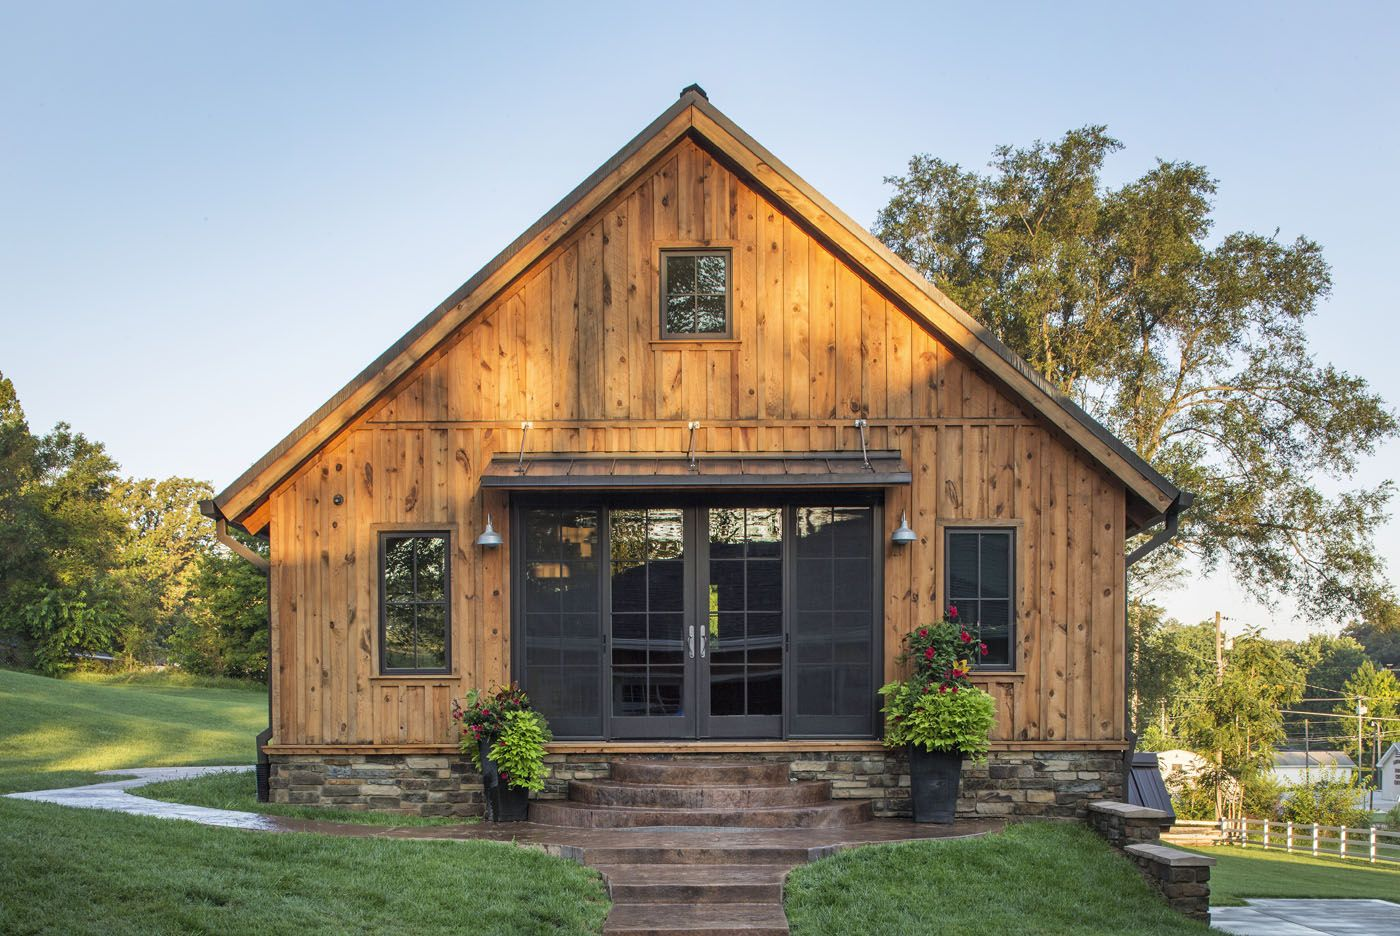 Rustic barn u home kits shipped nationwide visit our website to